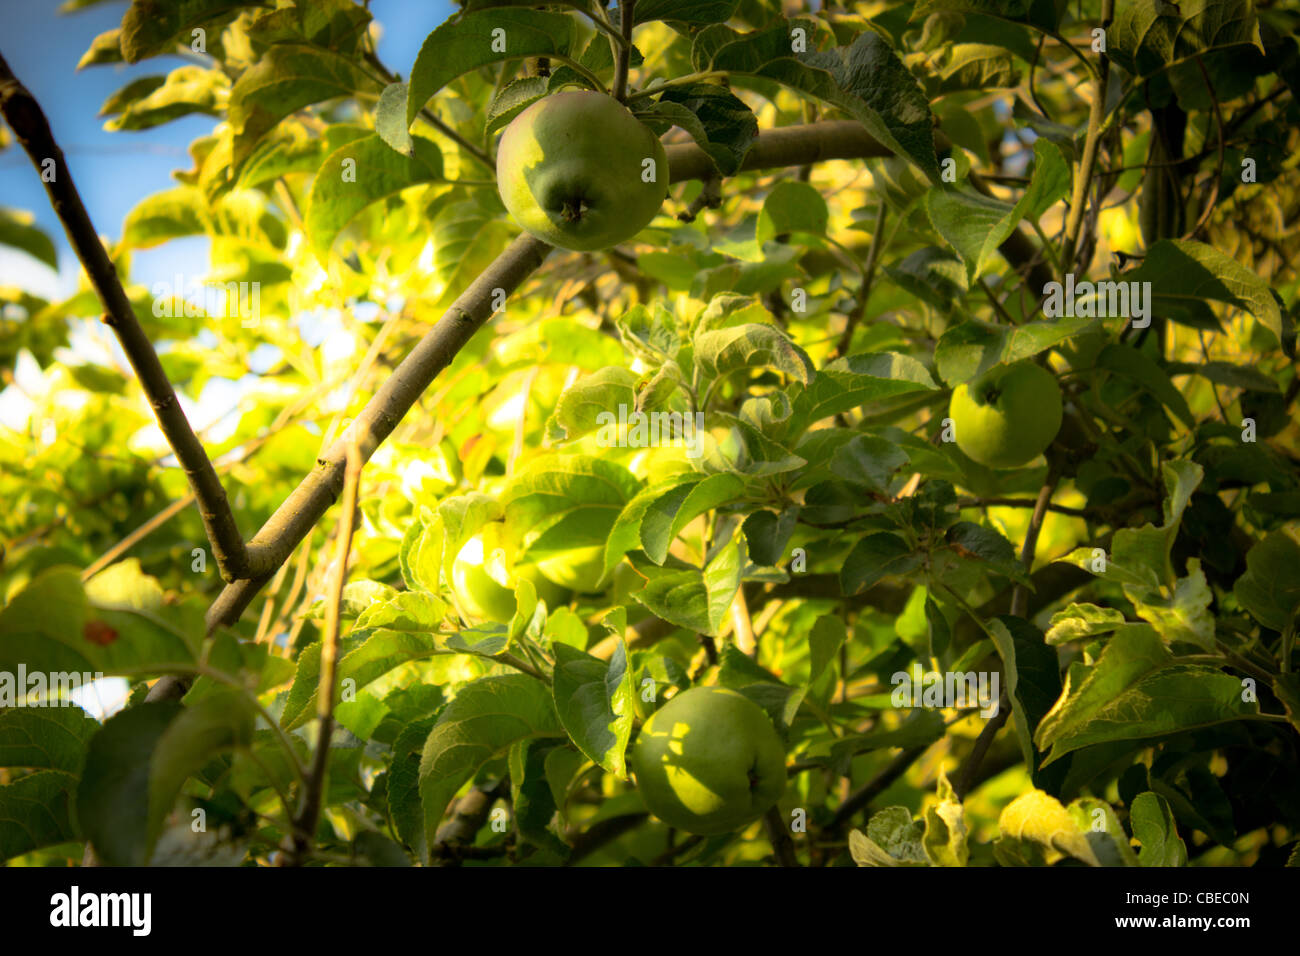 Apple tree in summer - Stock Image